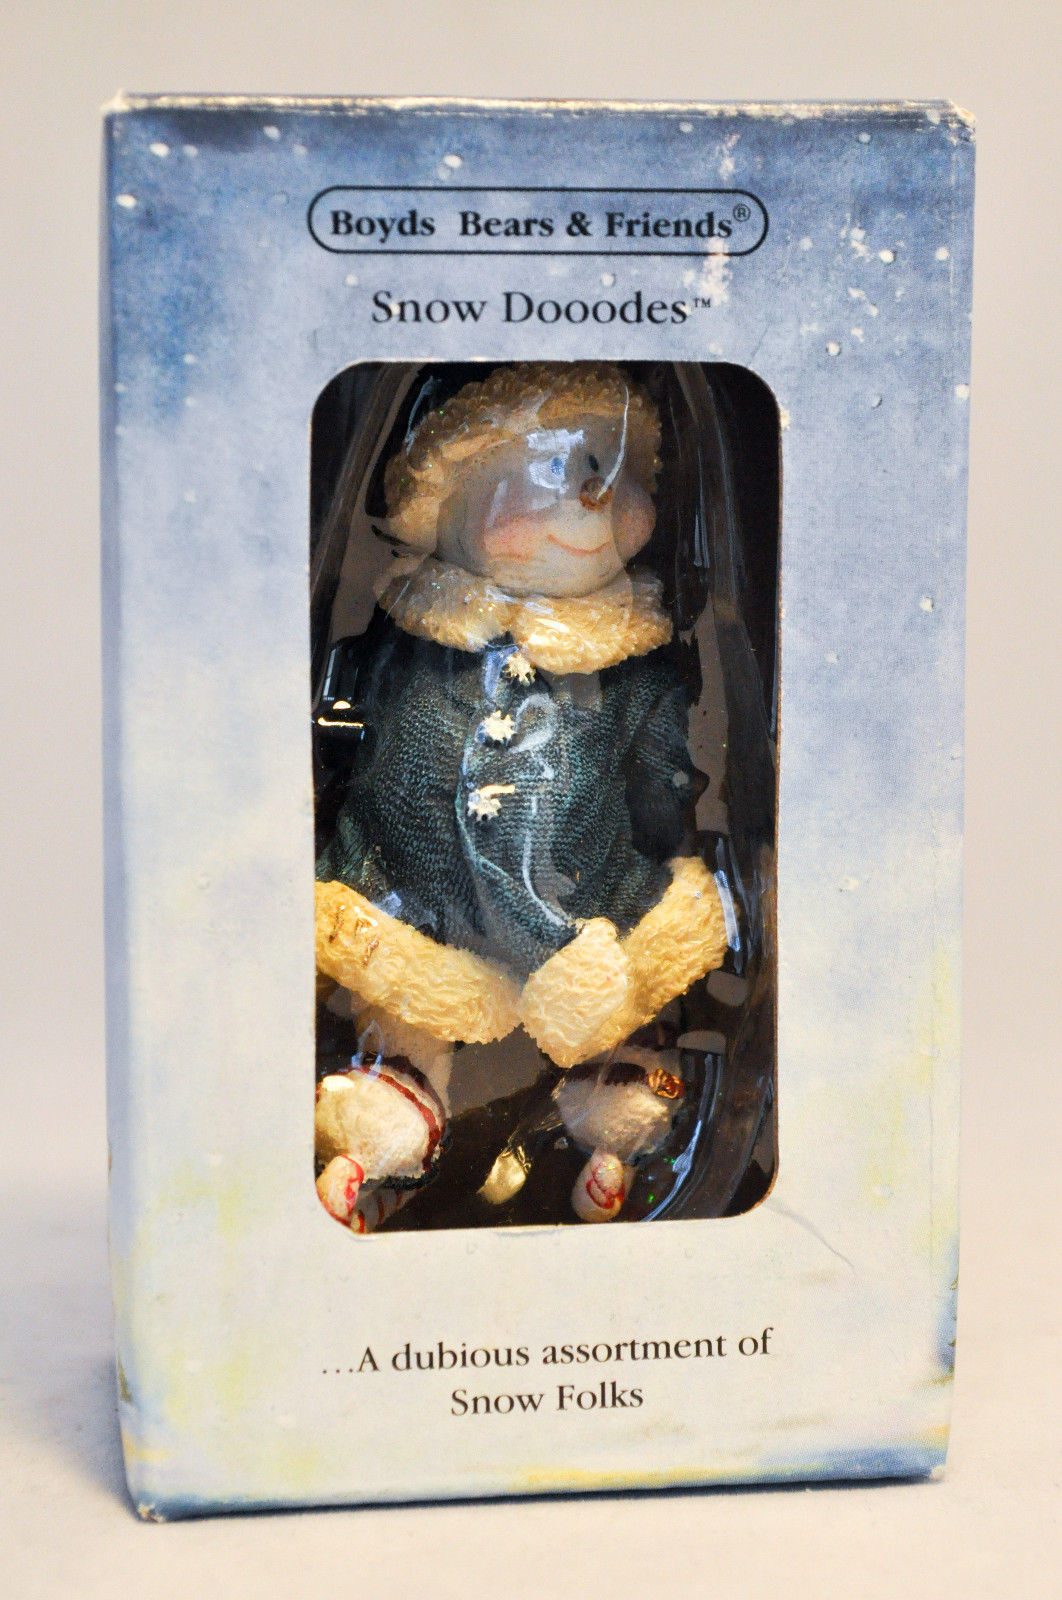 Boyds Bears & Friends: Candy Sweetskates - 25057 - Snow Dooodes image 11